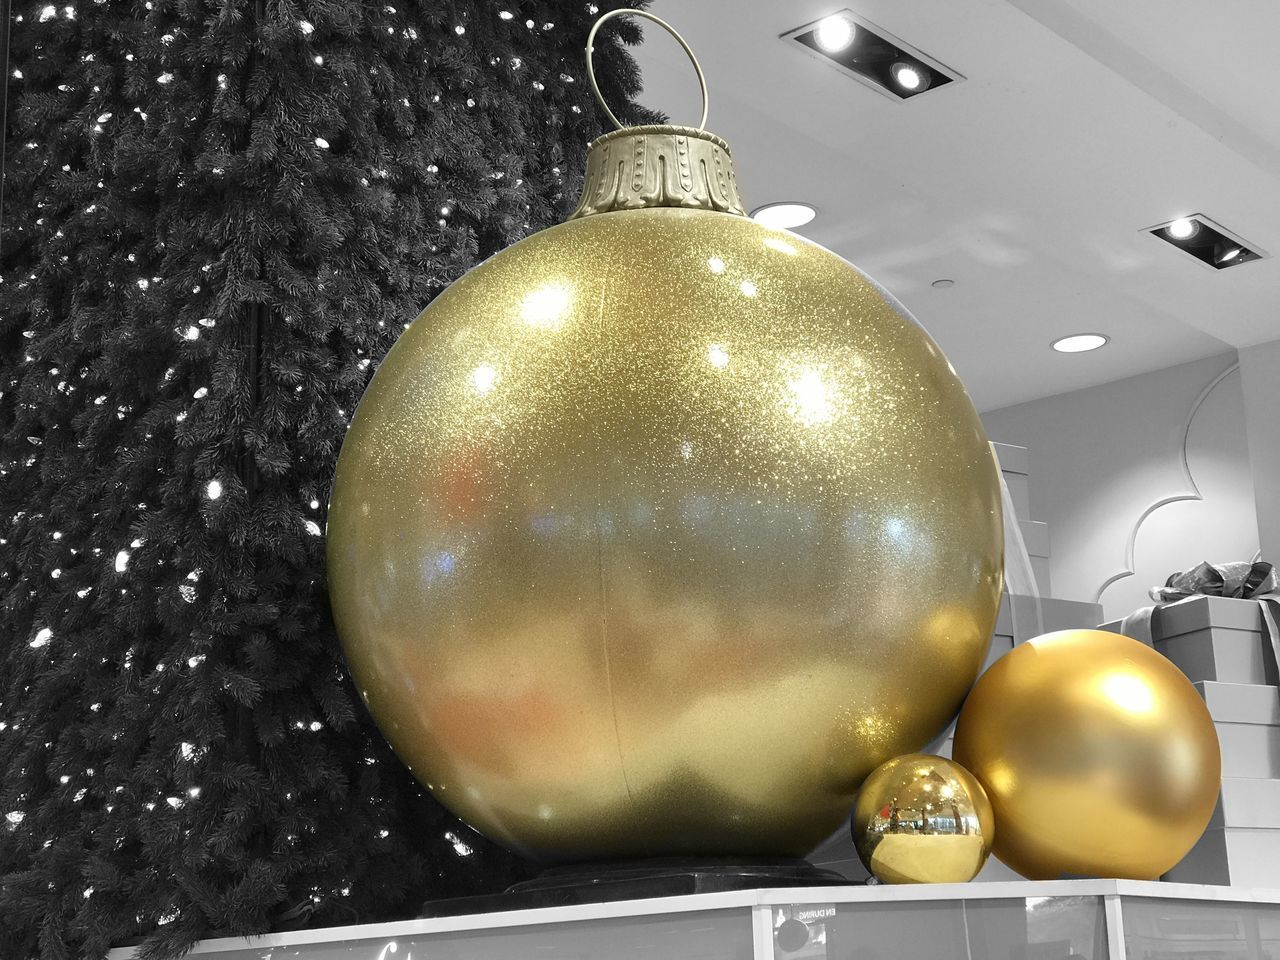 gold colored, metal, illuminated, indoors, shiny, christmas ornament, bauble, christmas decoration, golden color, no people, low angle view, hanging, close-up, night